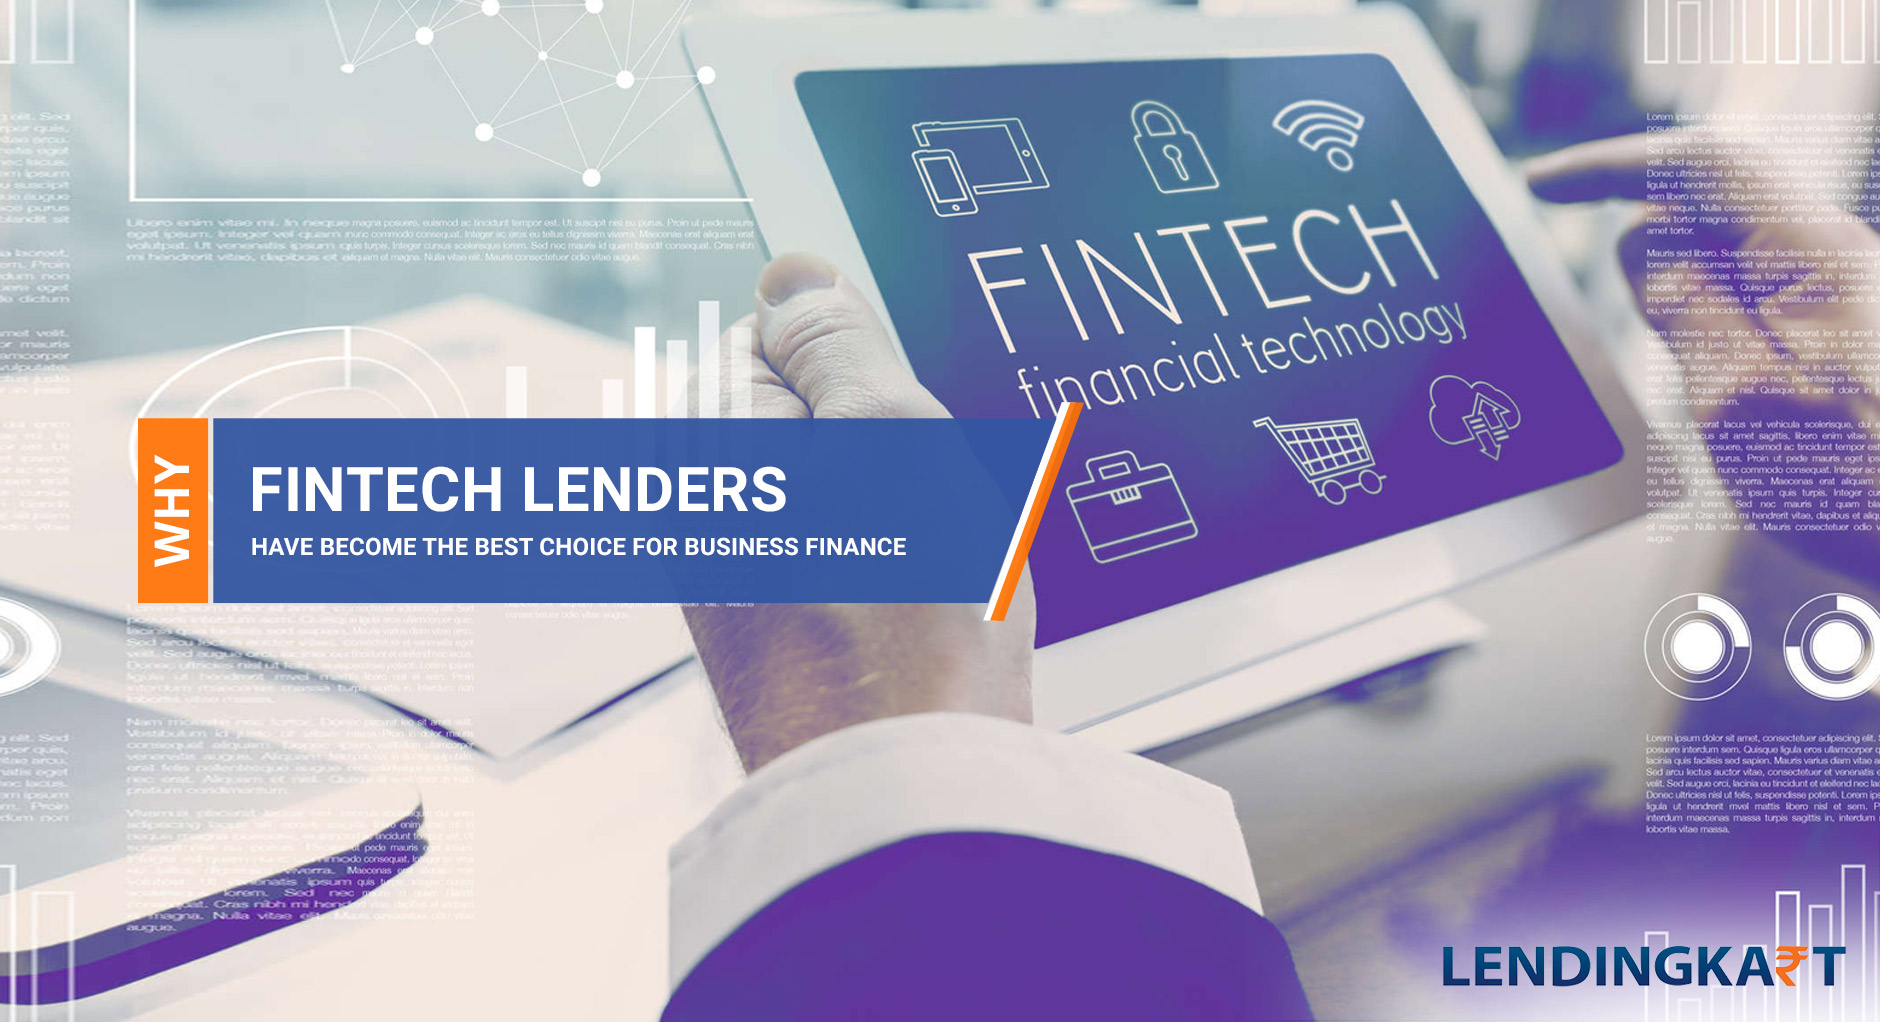 why fin-tech lenders have become the best choice for business finance